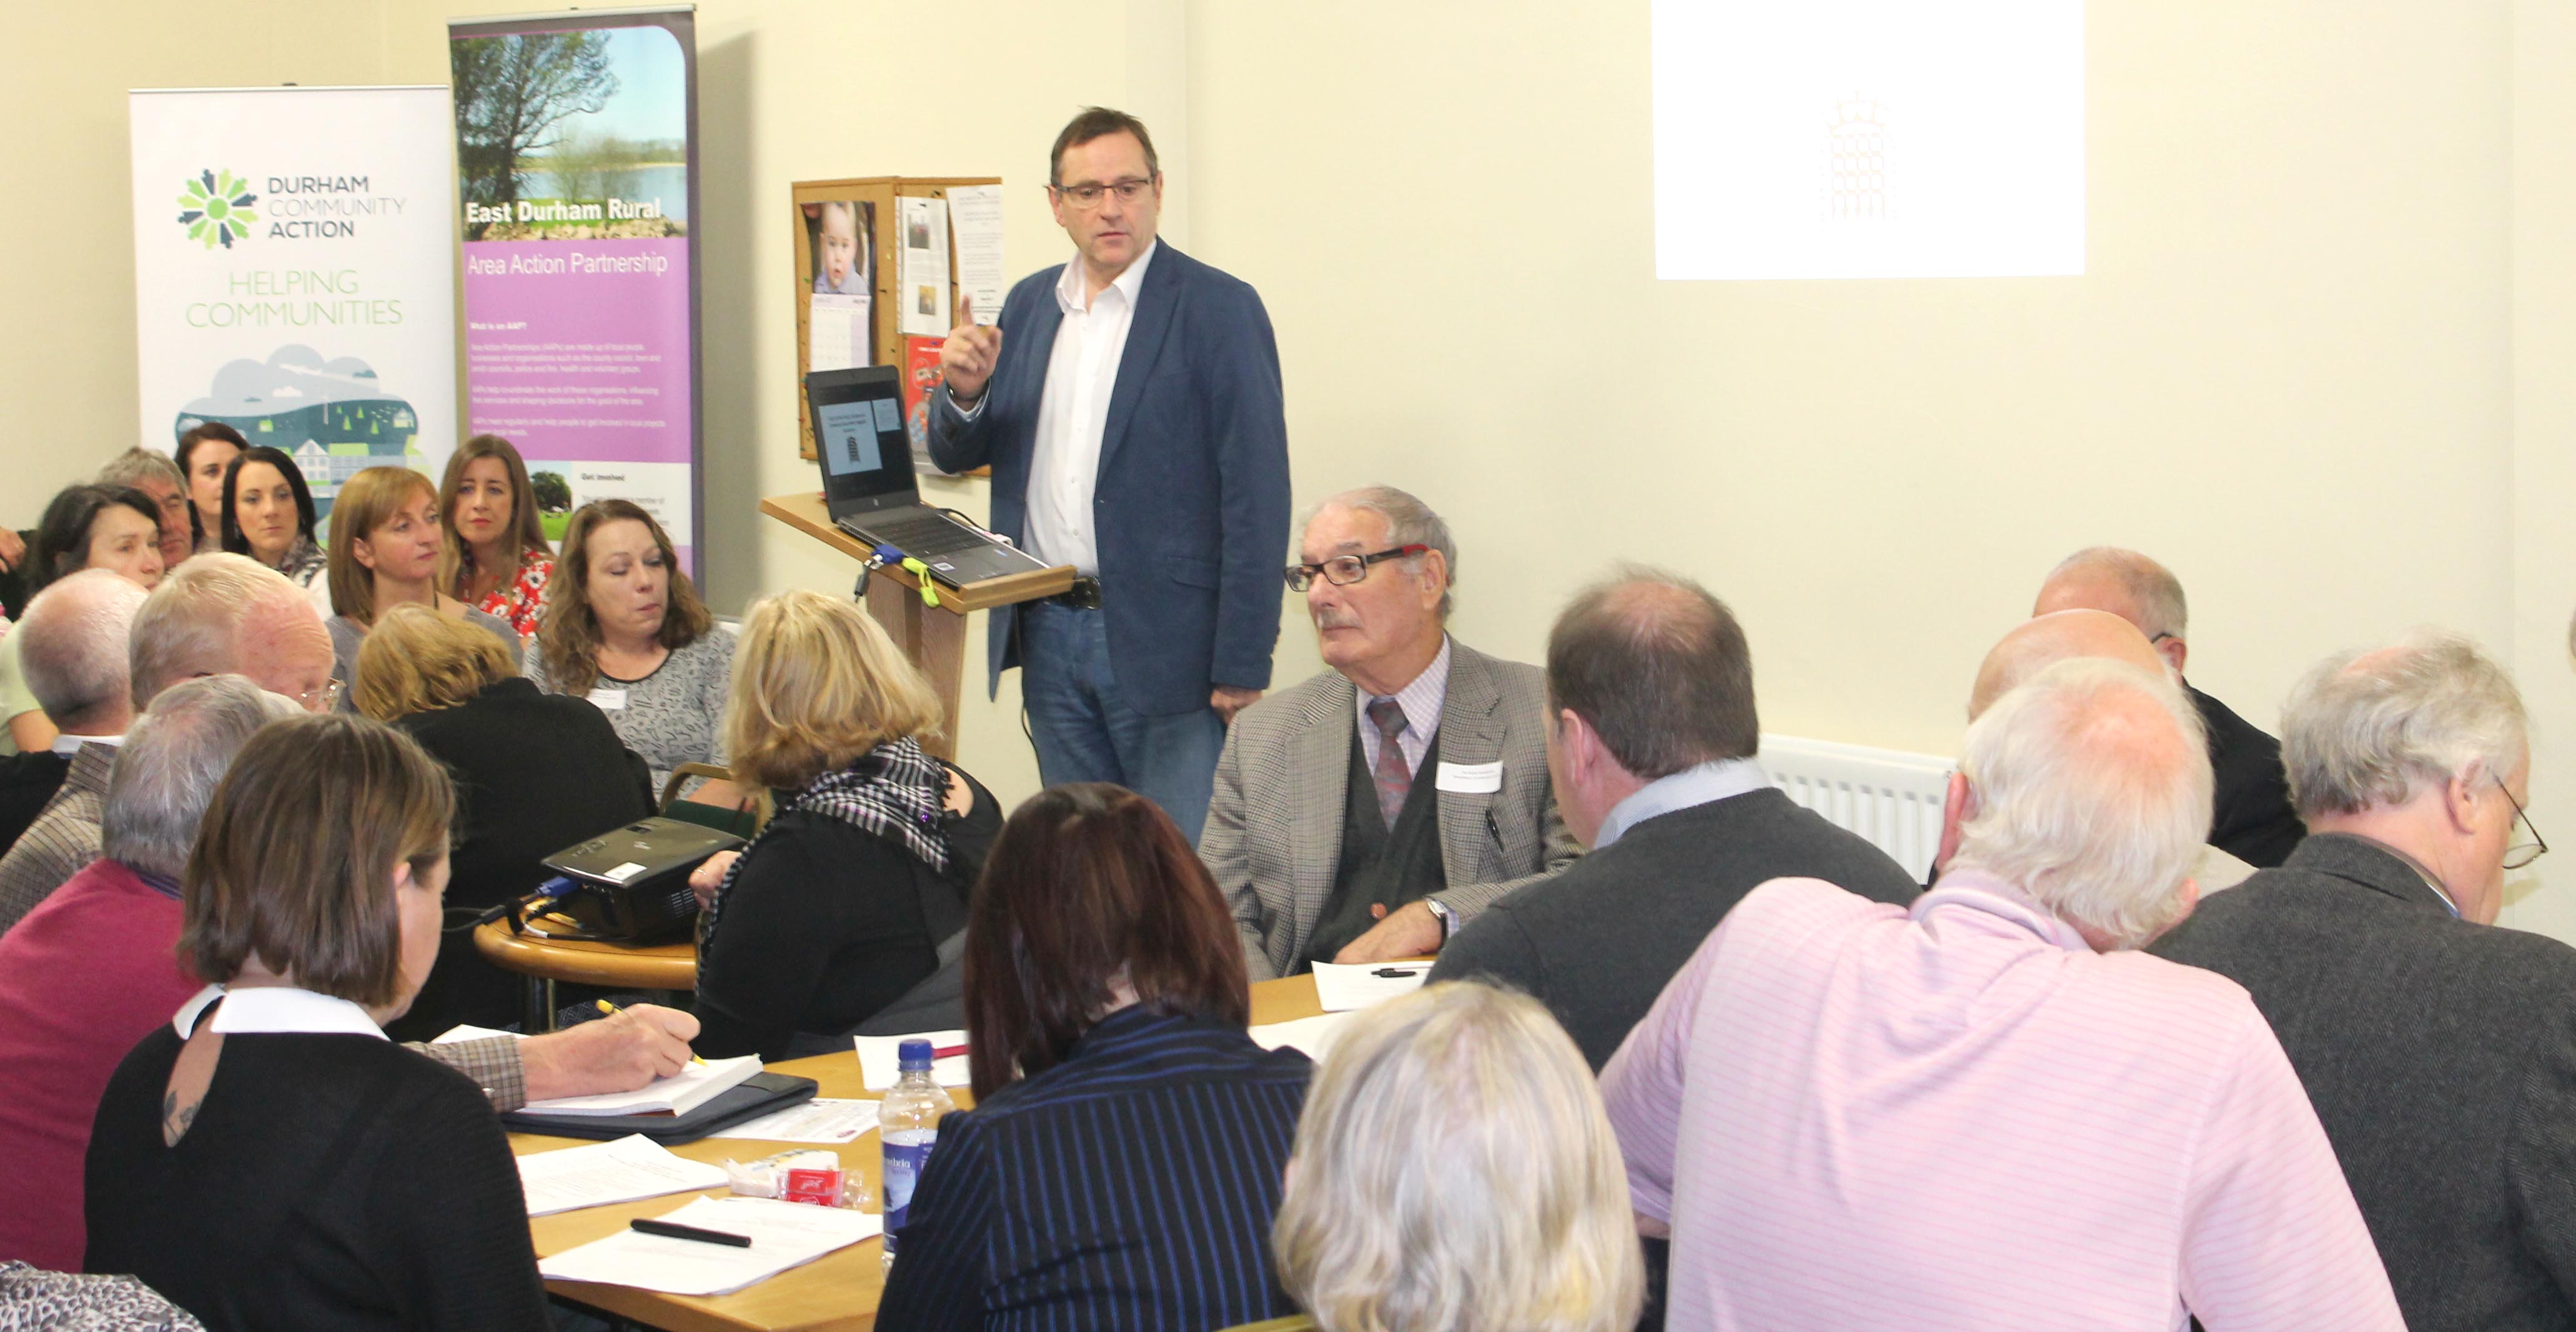 our M.P. Encourages   Community Networking